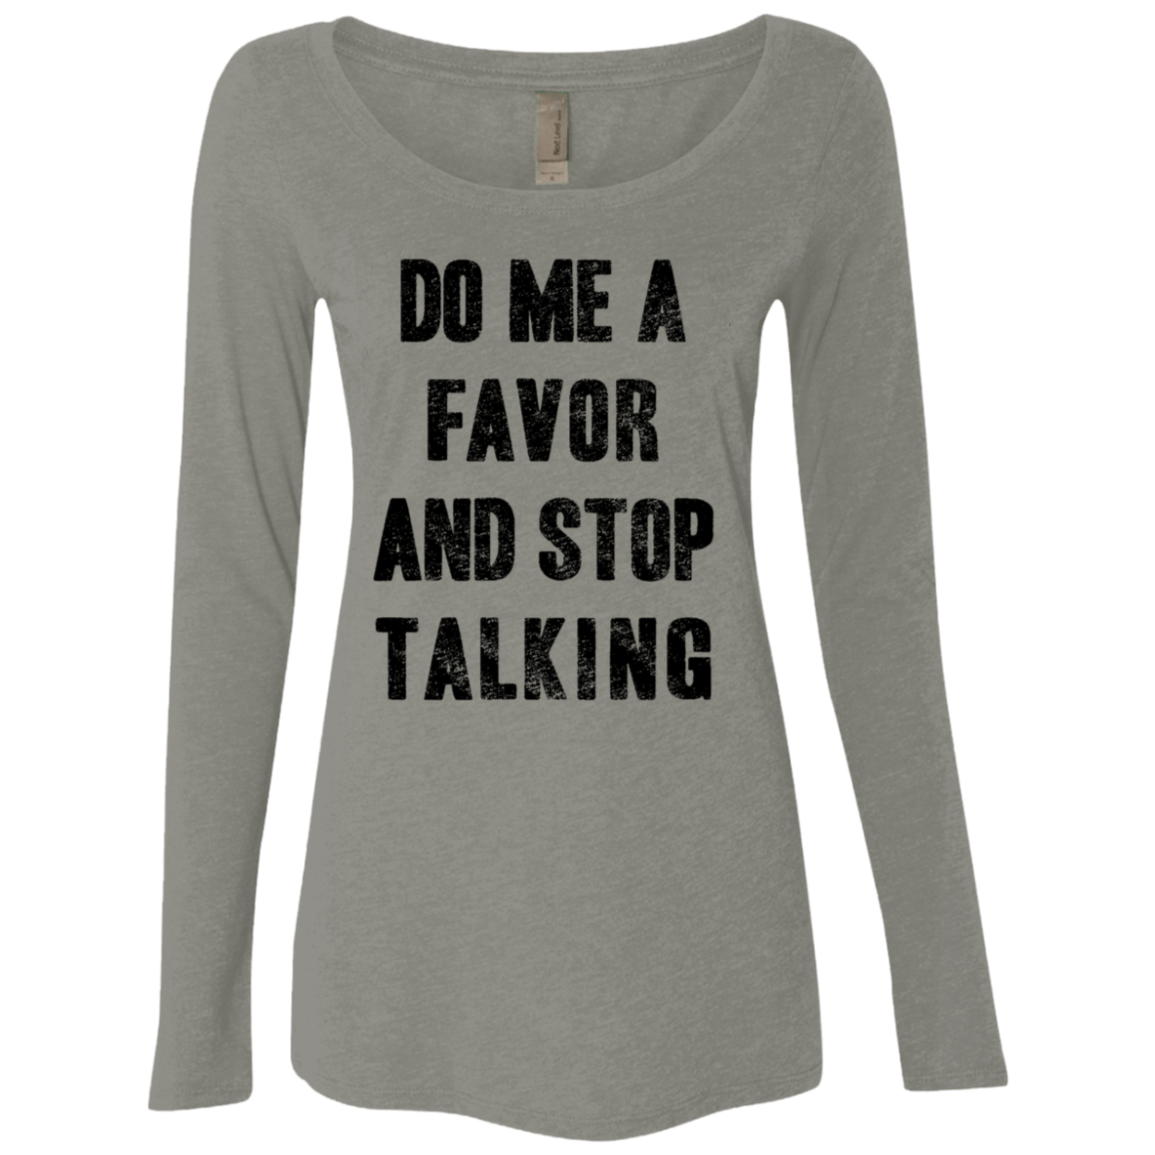 Do Me A Favor and Stop Talking Women's Long Sleeve Tee